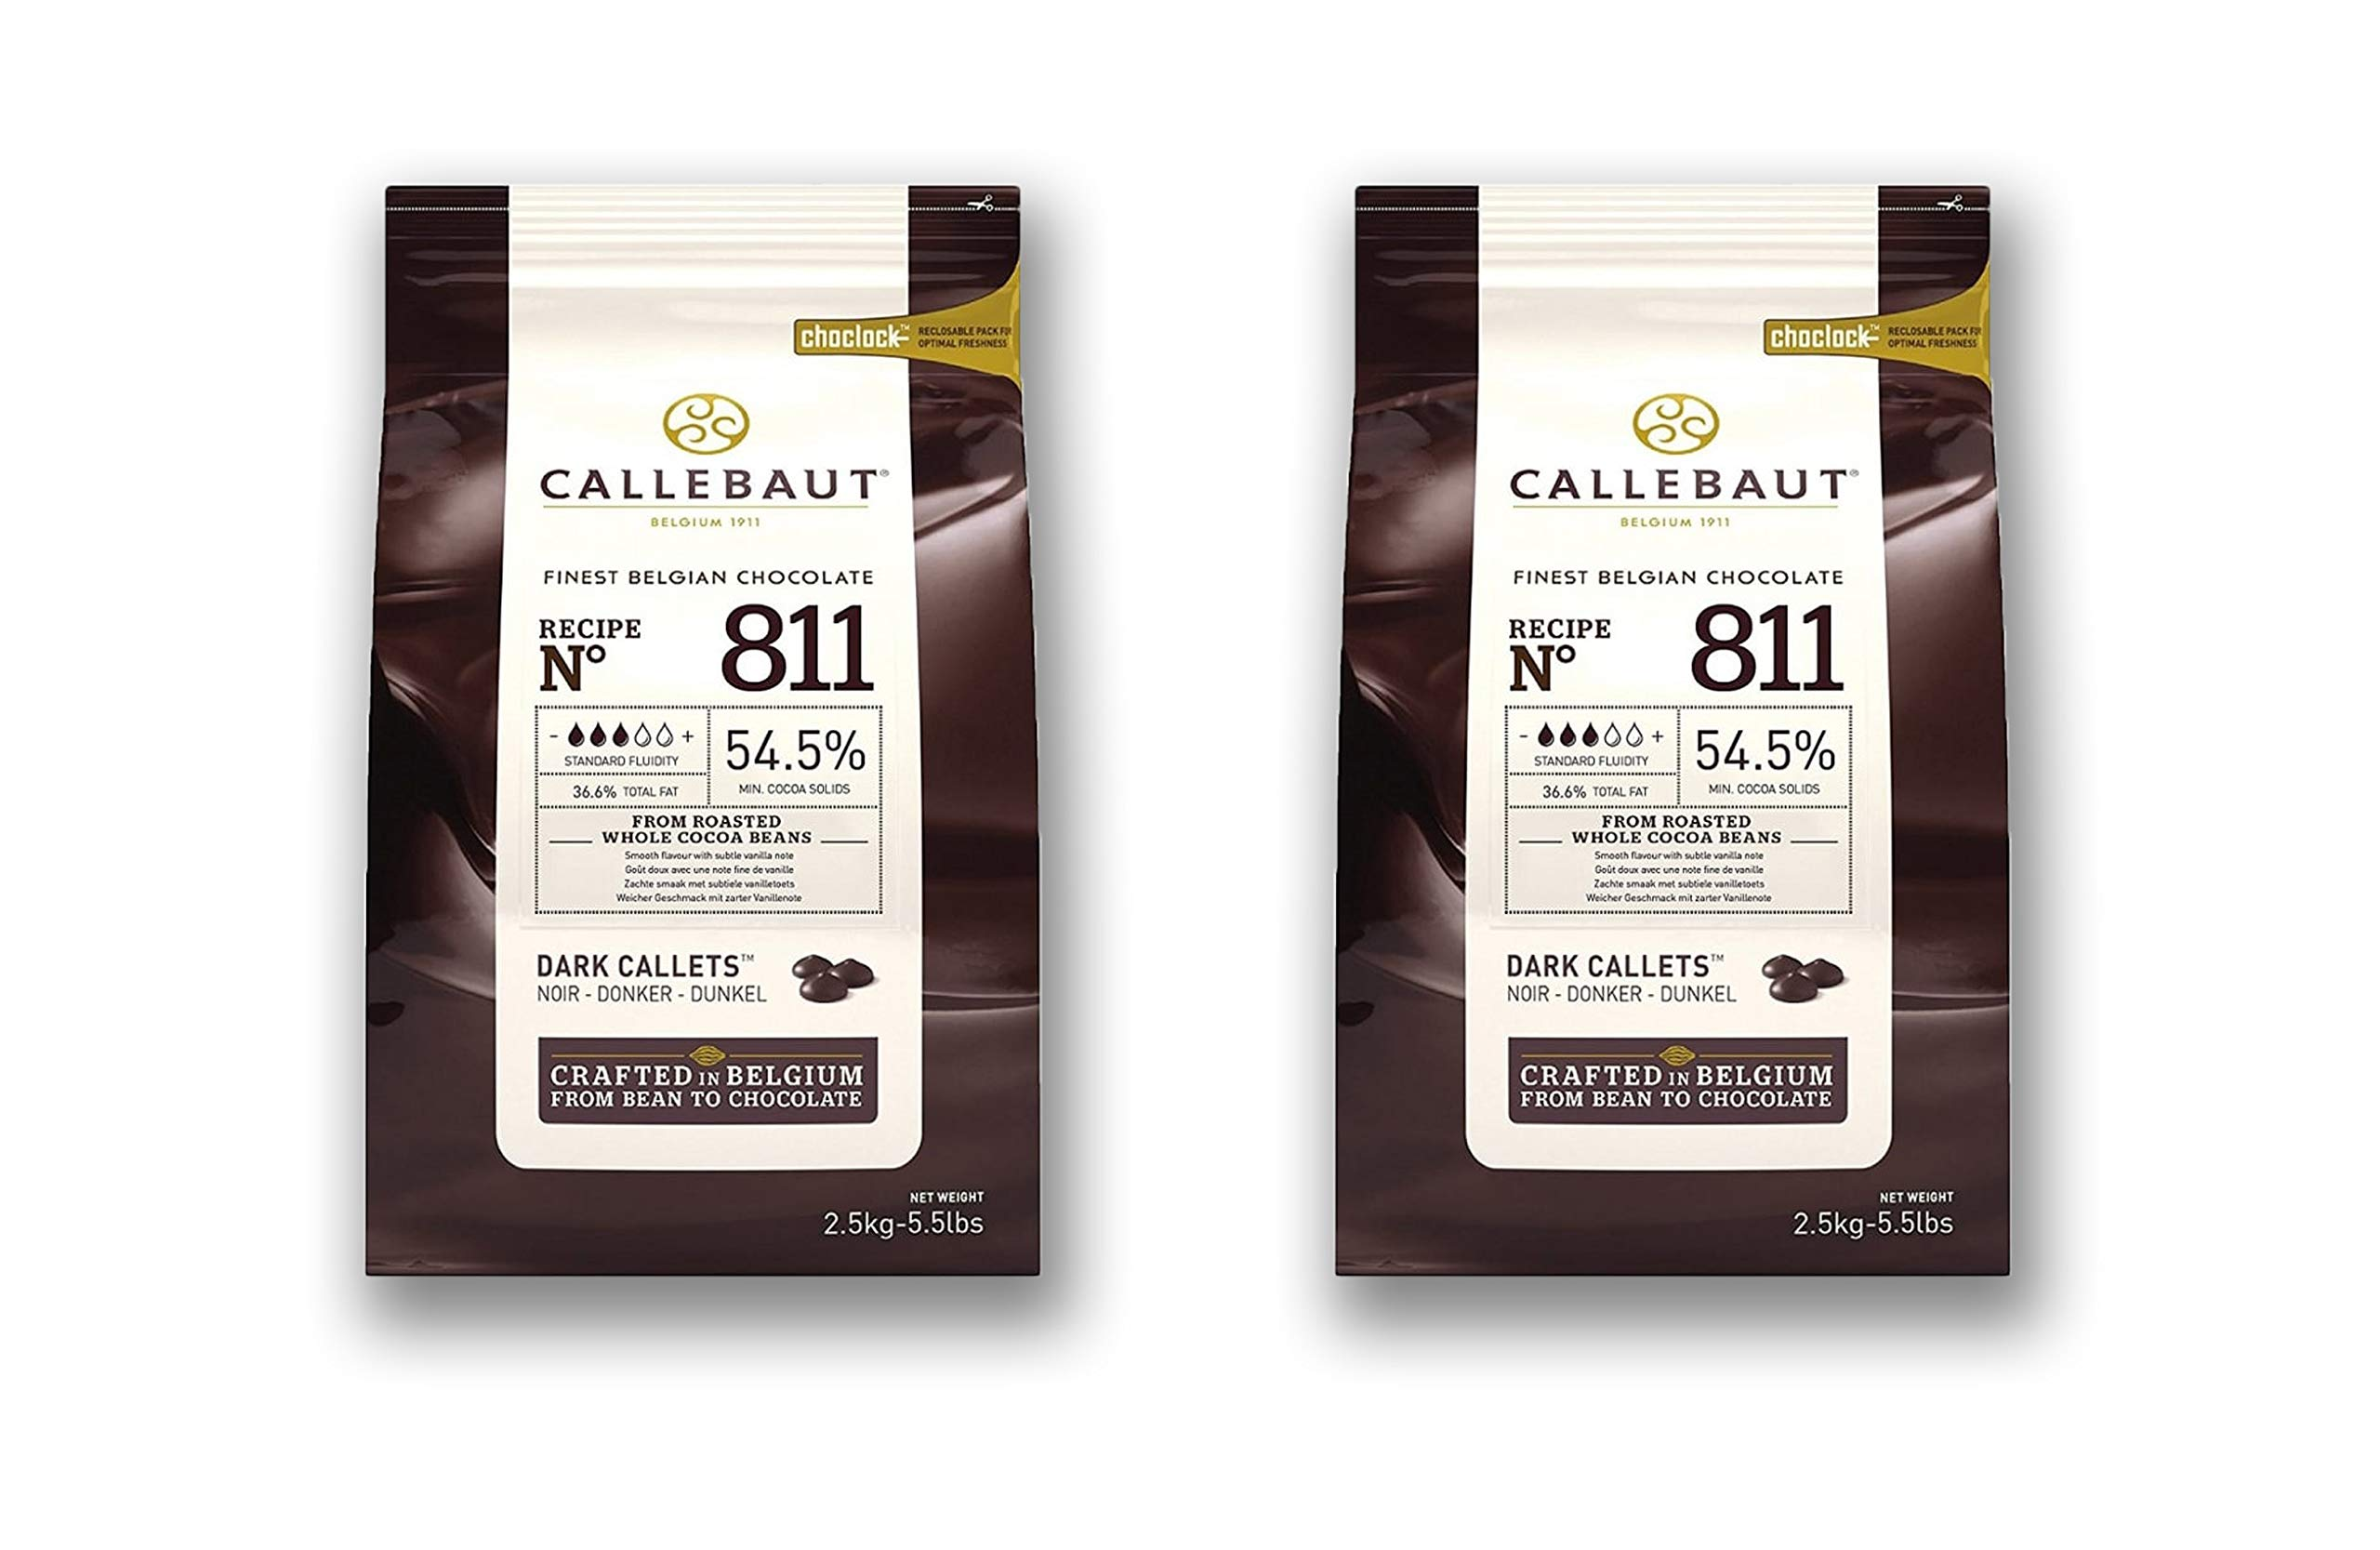 Belgian Dark Couverture Chocolate Semisweet Callets, 54.5% - 2 Pack - 2 x 5.5 Lbs (2 pack) (2 bags, 2x5.5 lbs) by Callebaut (Image #1)